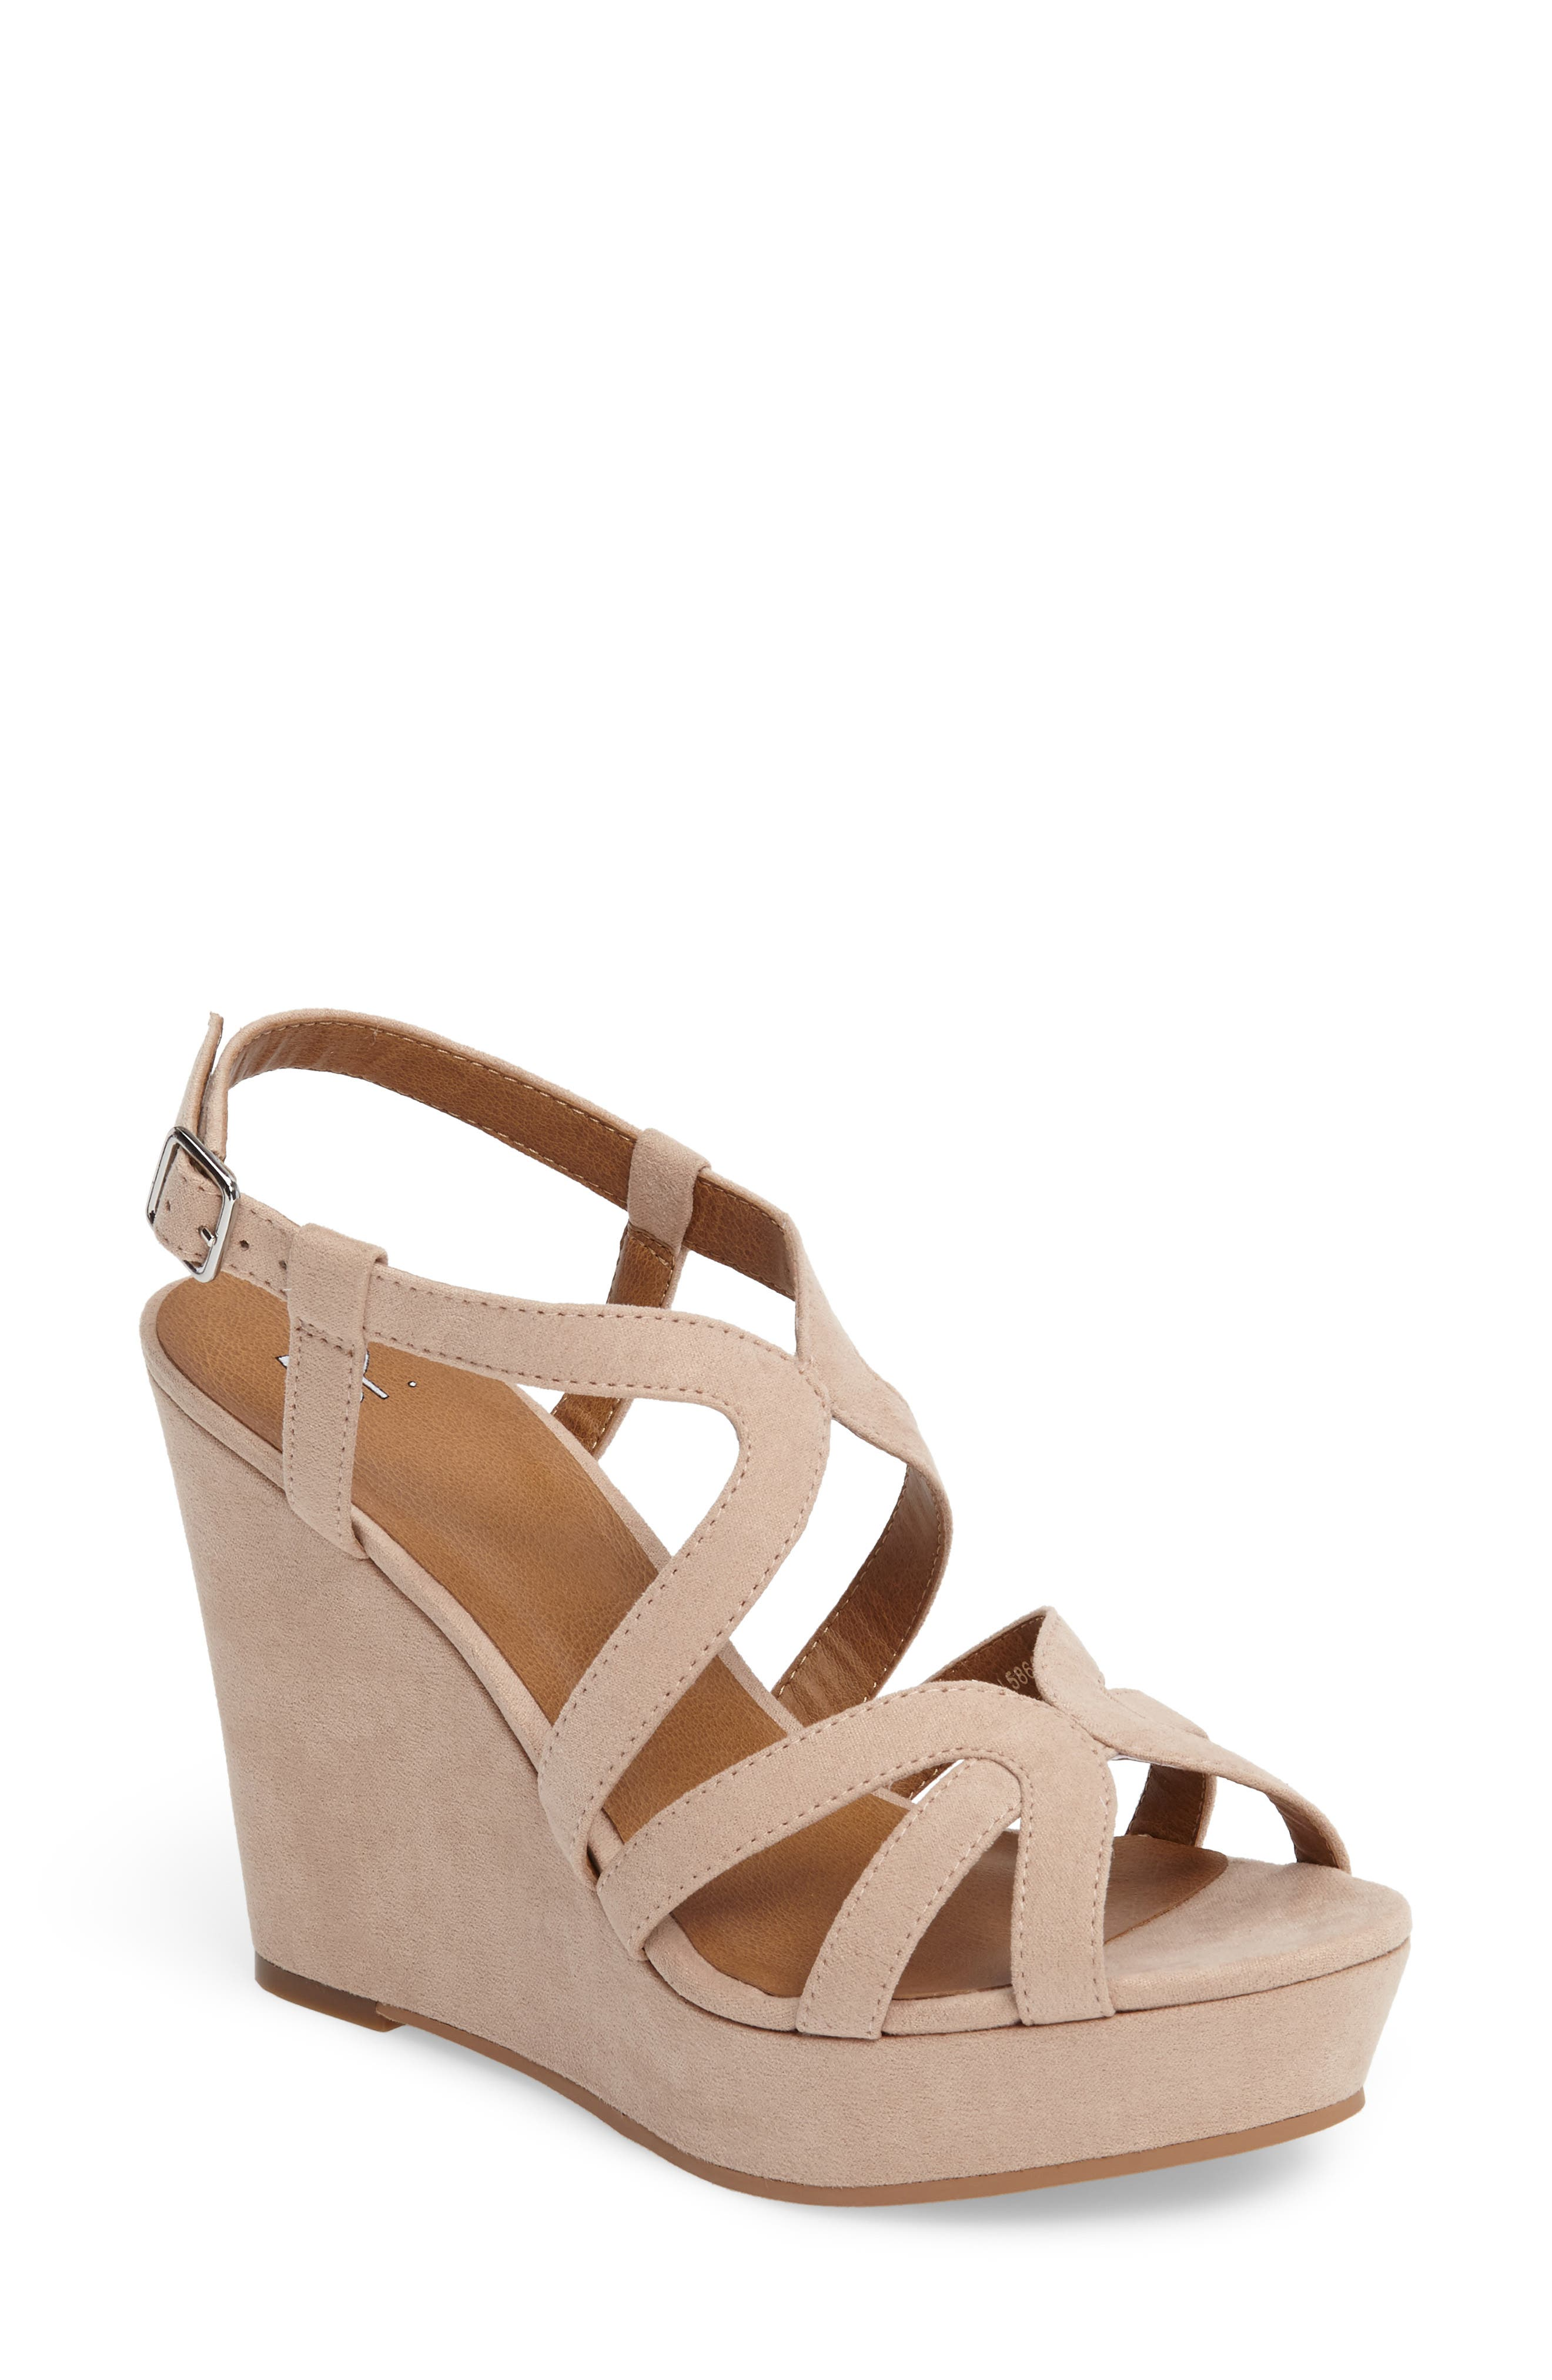 Womens Wedge Sandals Nordstrom Nordstrom